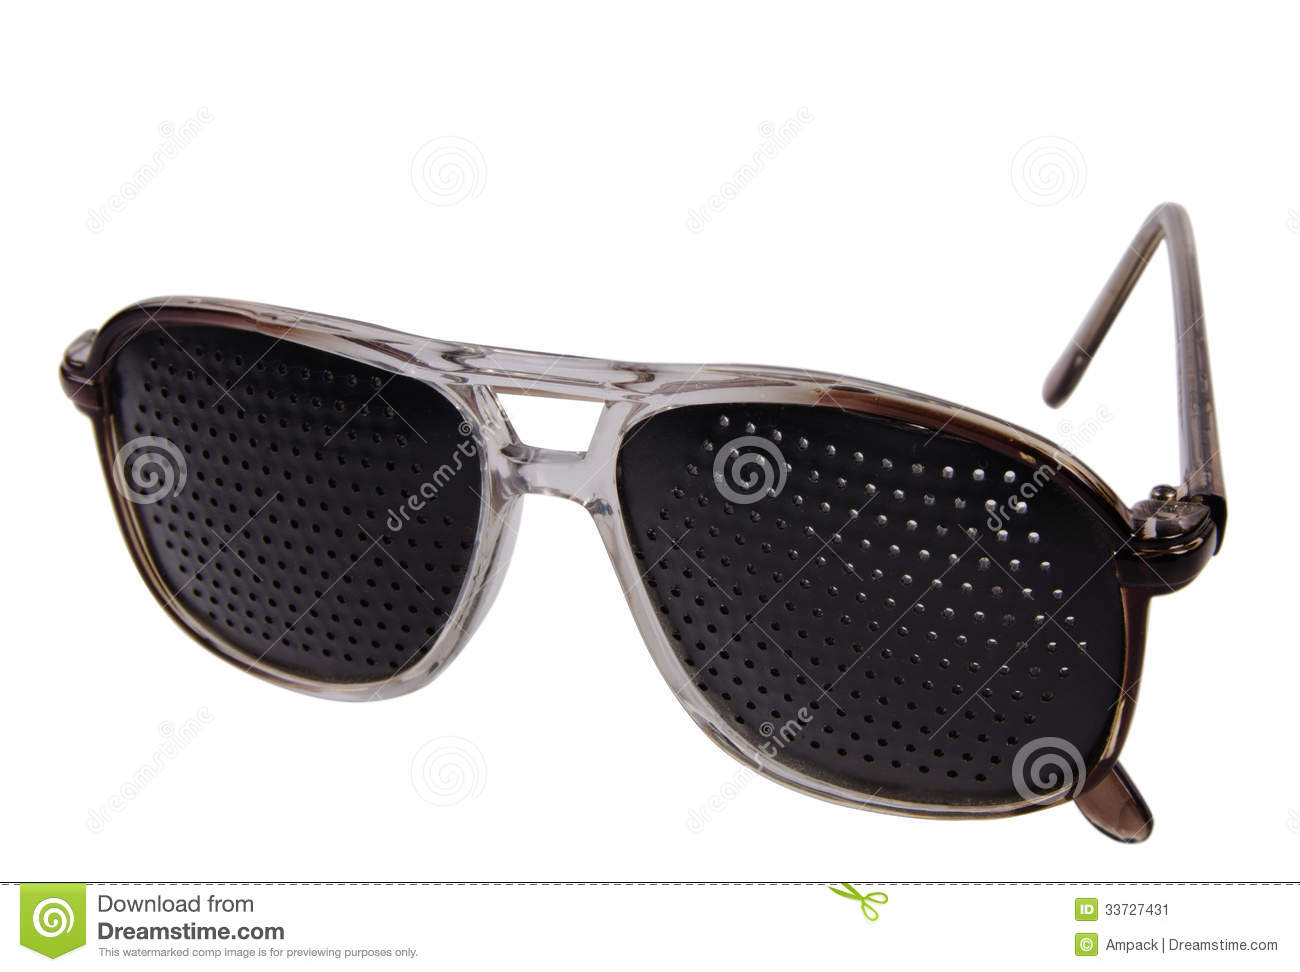 790273806989 Pair of stylish trendy modern dark glasses or shades with unusaul patterned  lenses with holes isolated on a white background